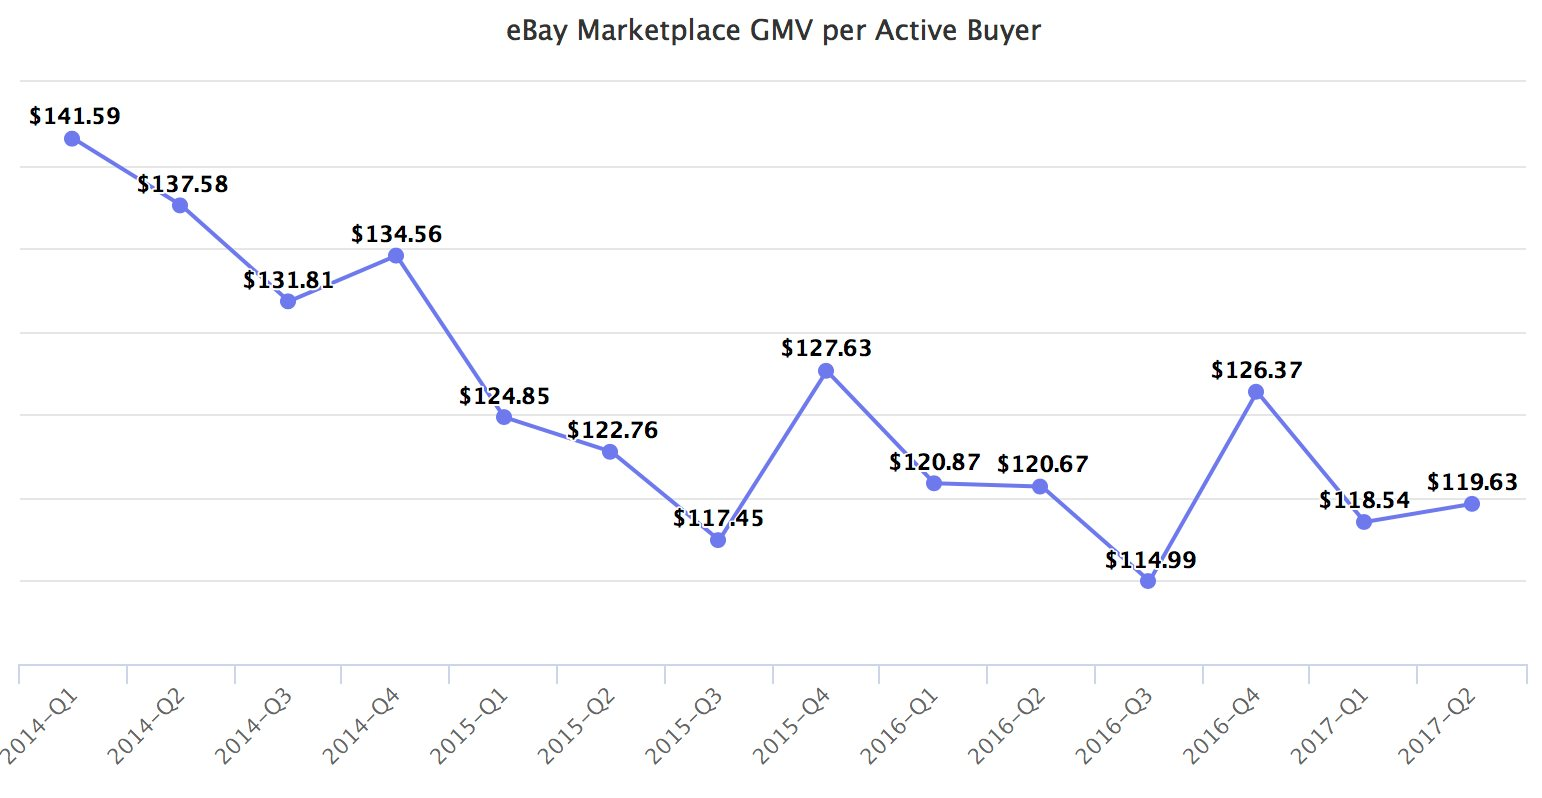 eBay Marketplace GMV per Active Buyer